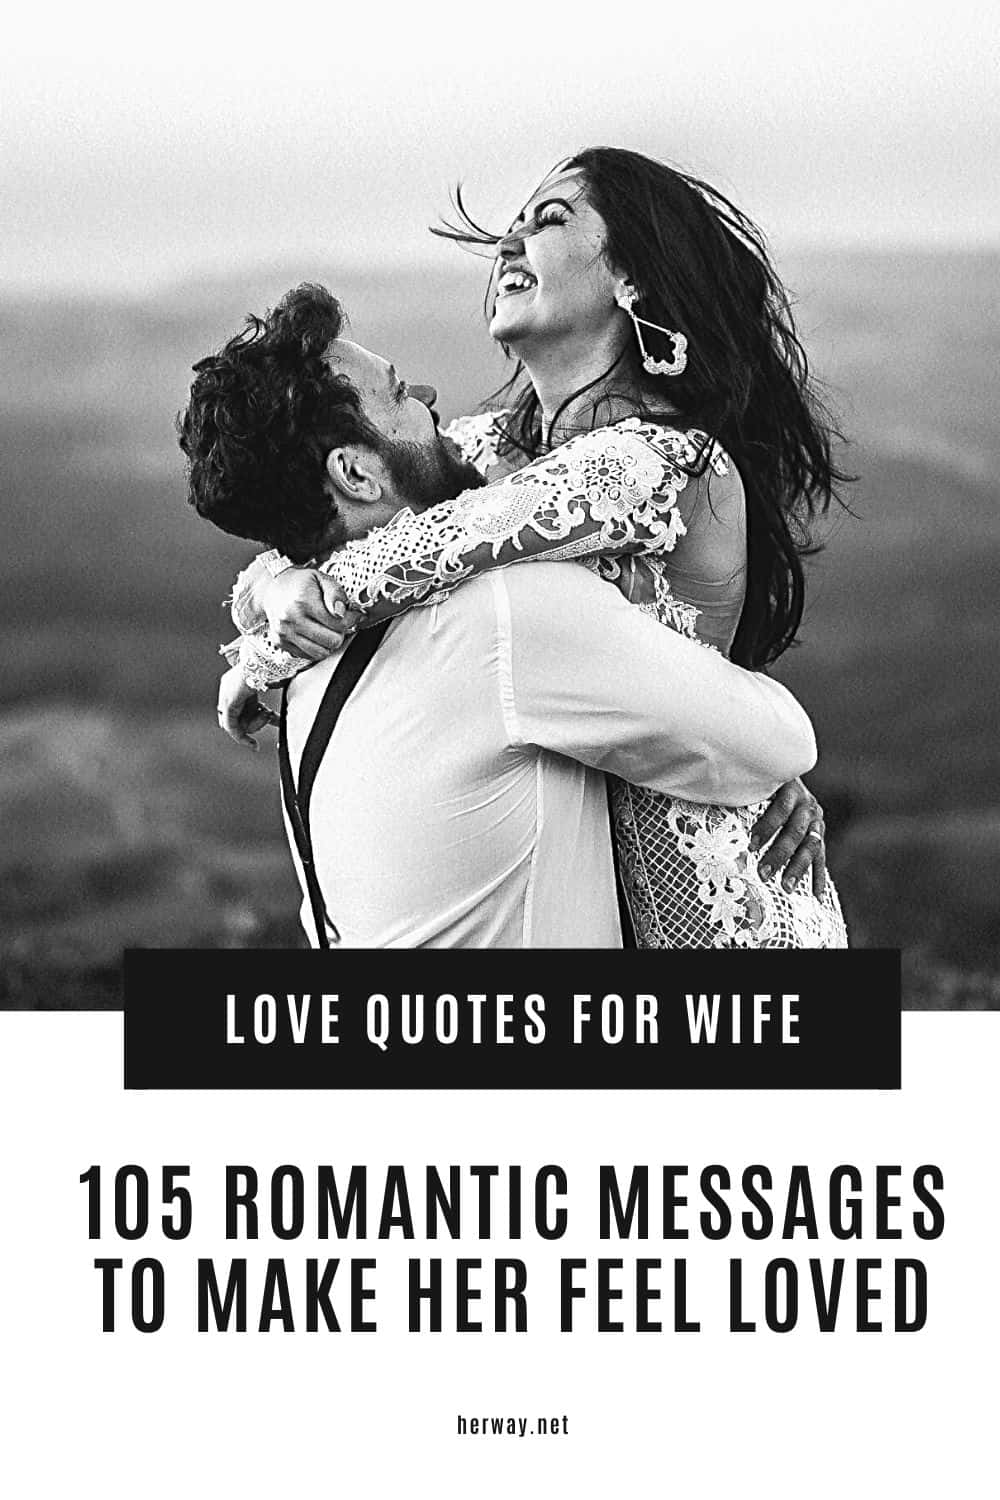 Love Quotes For Wife 105 Romantic Messages To Make Her Feel Loved Pinterest